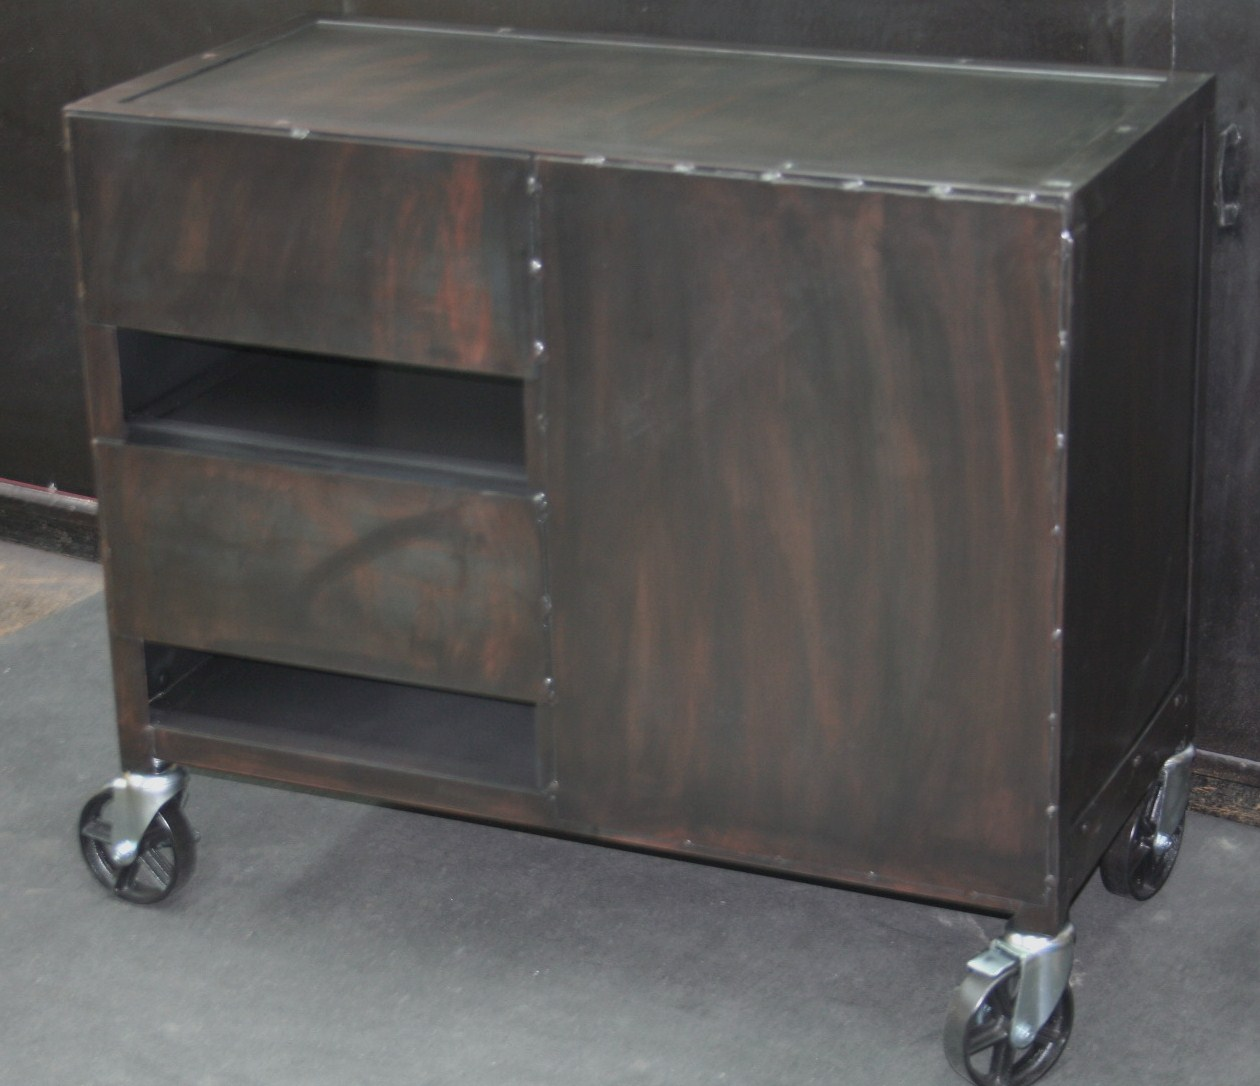 Media Furniture Cabinets: Real Industrial Edge Furniture Llc: Small Industrial Media